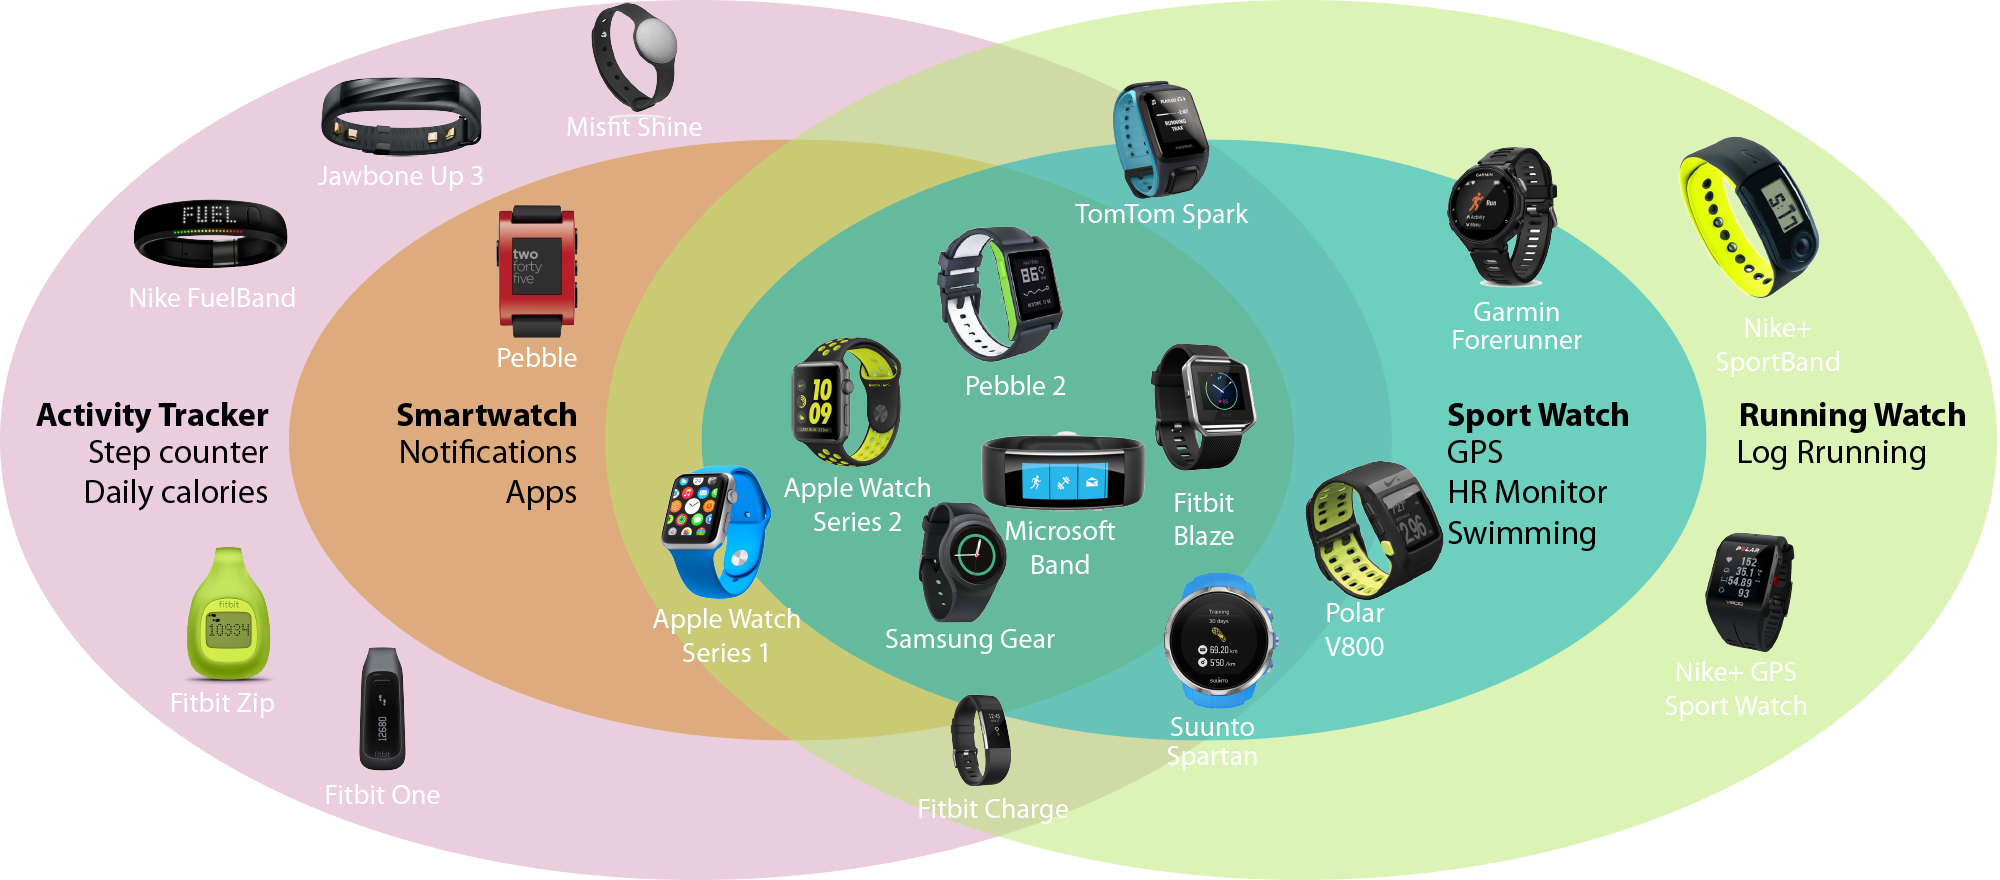 As fitness trackers converge, the industry sprints toward